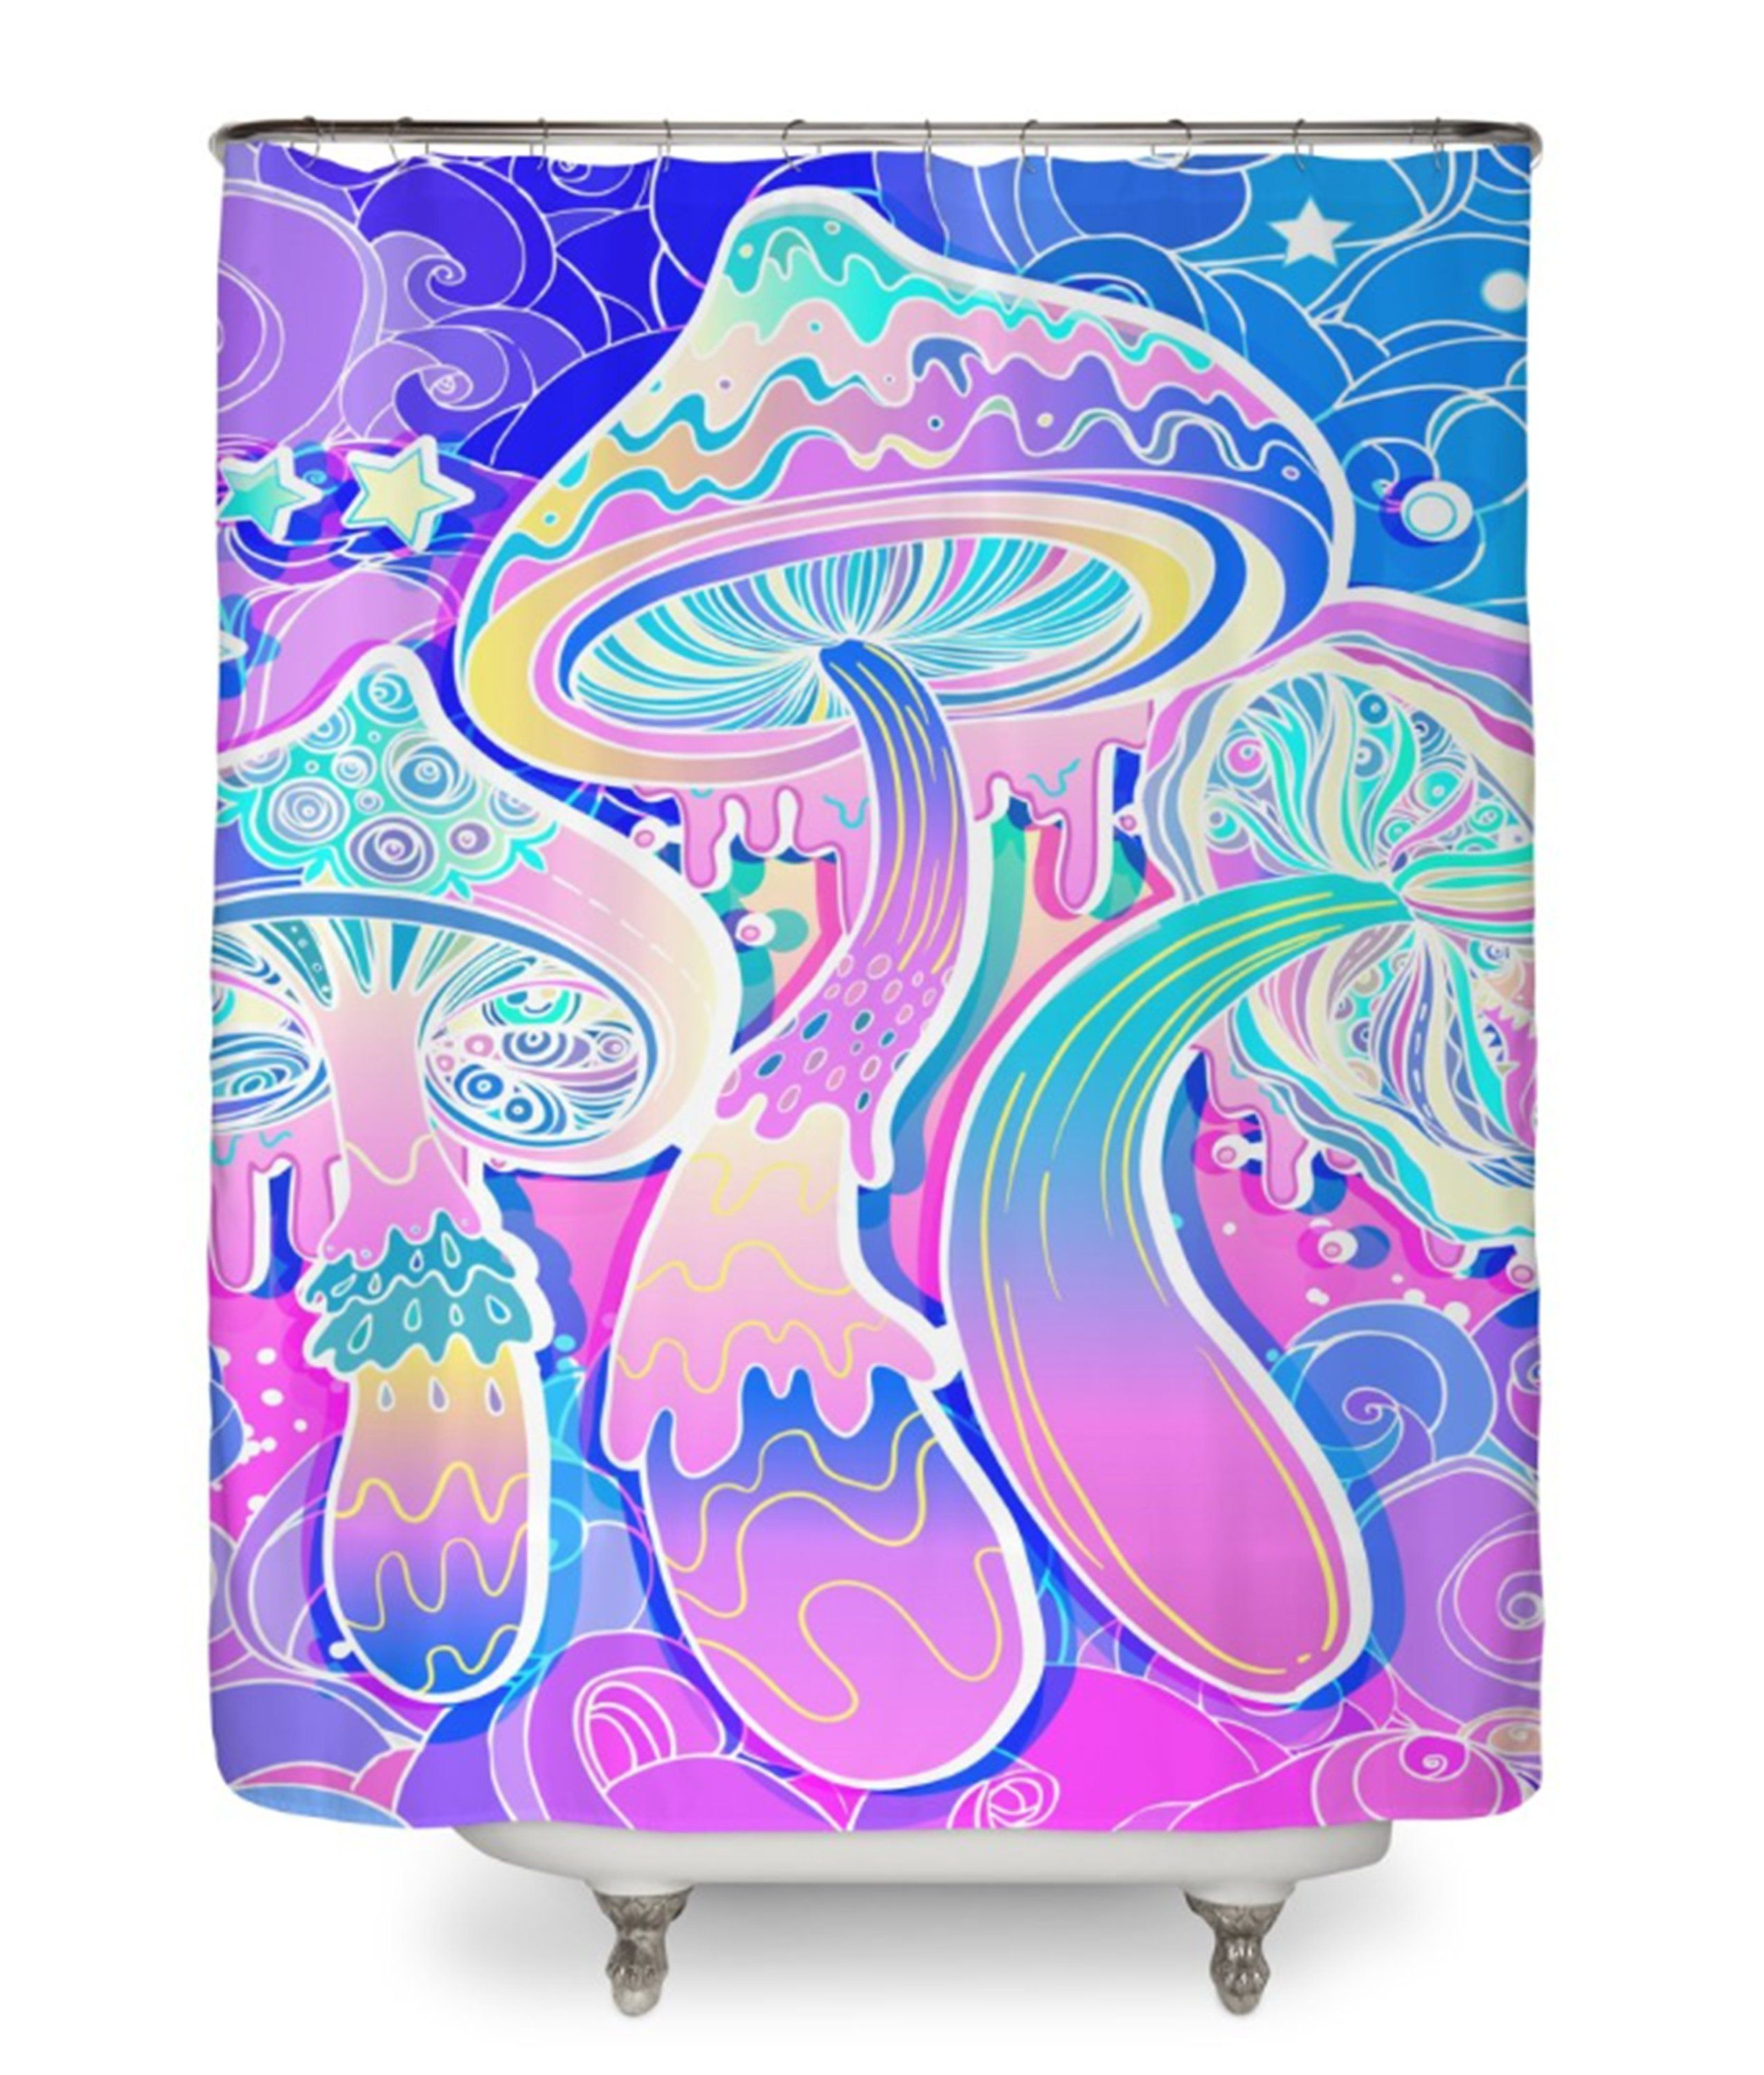 Magic Mushrooms Shower Curtain Shrooms Curtains Psychadelic Psychedelic Bath Decor